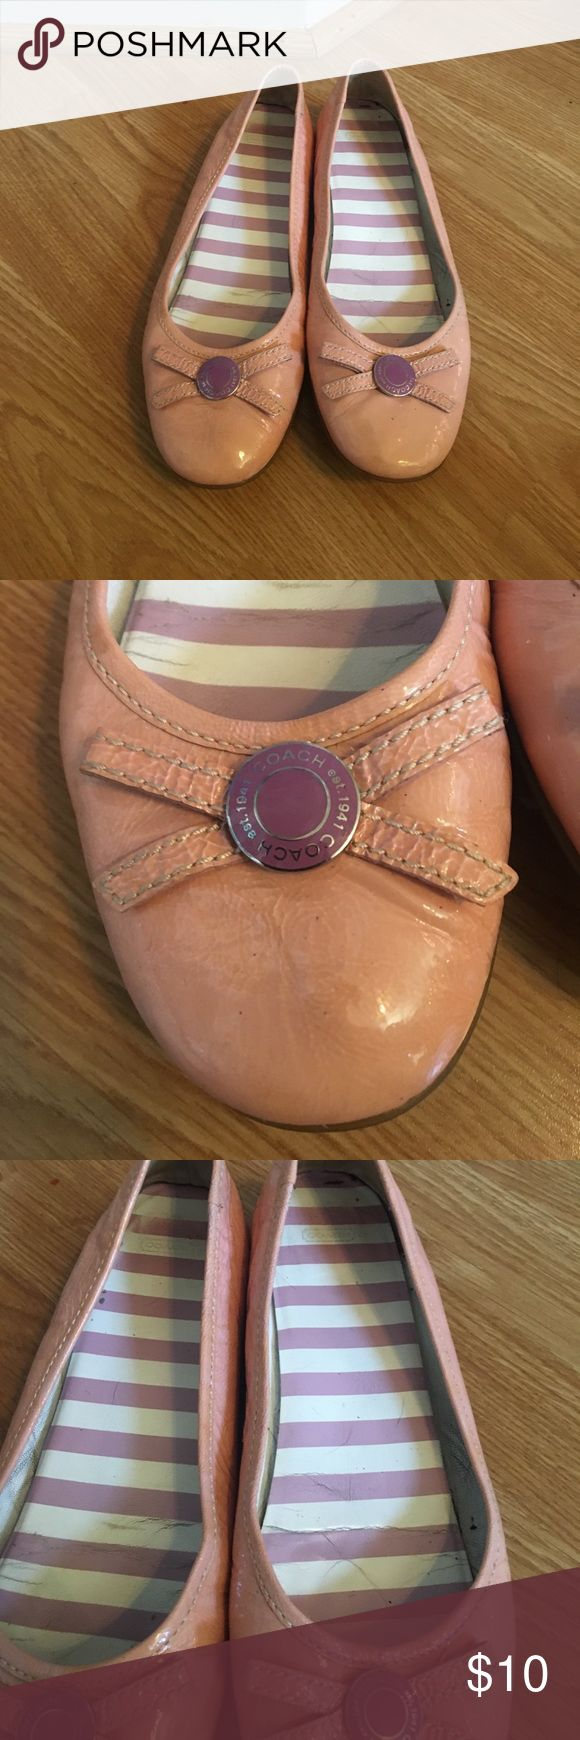 Baby pink and purple bow coach flats Coach flats with the coach button and bows on each of the feet. They are used and there's signs of cracking on the soles along with a nail polish stain on the bottom that can be gotten out. Coach Shoes Flats & Loafers